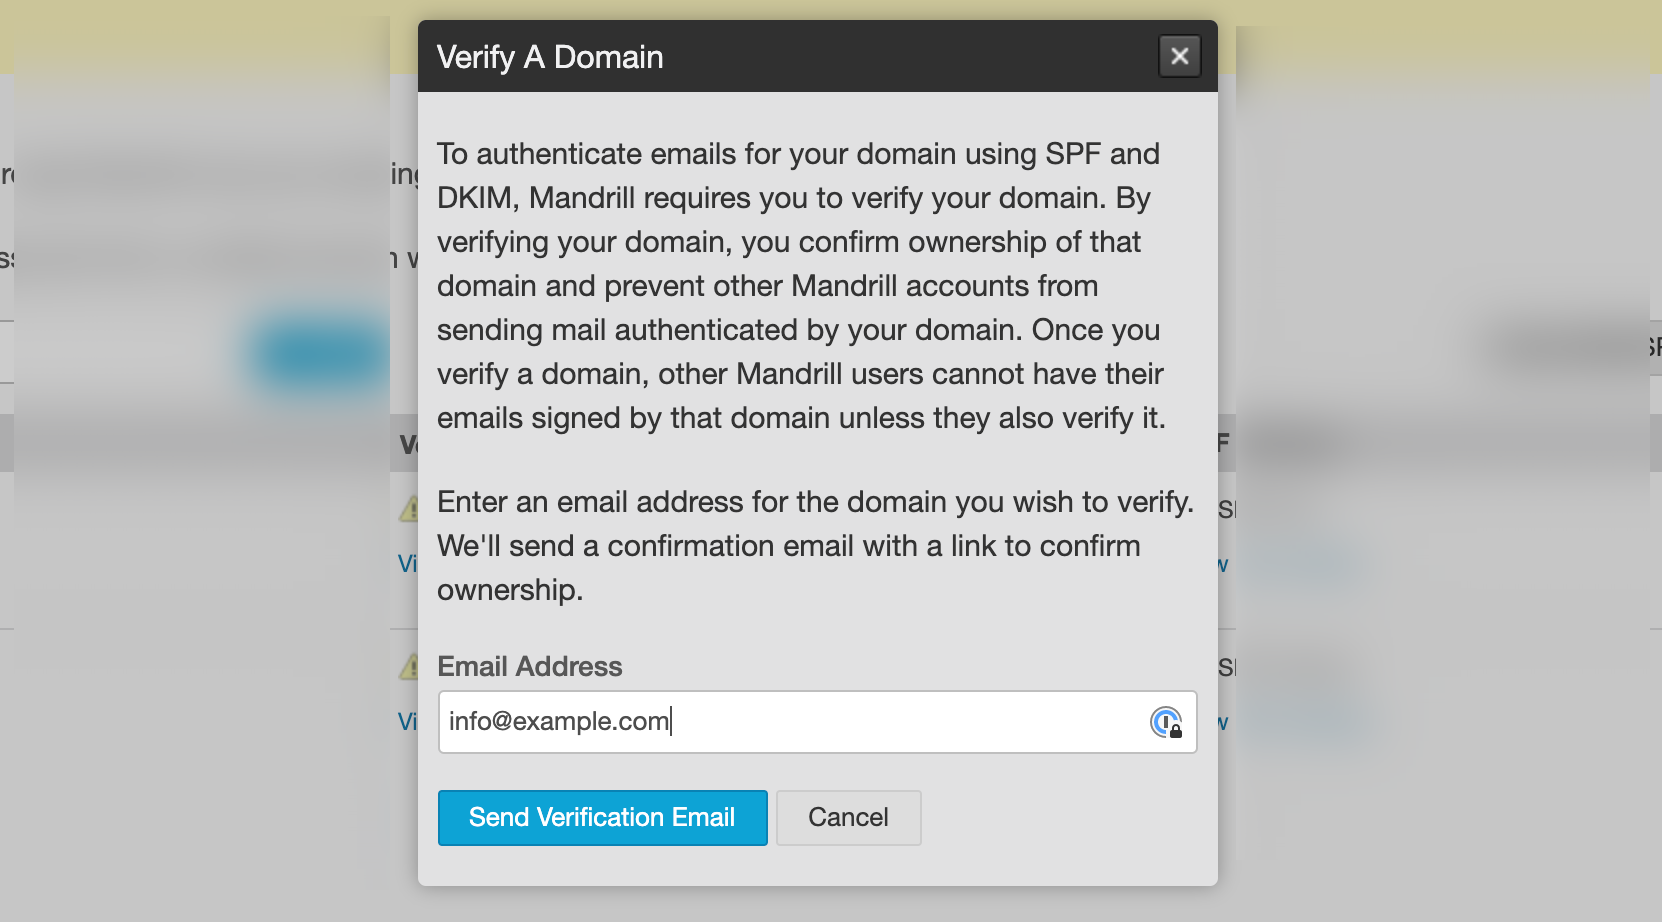 Screenshot of verifying a domain in Mailchimp Transactional